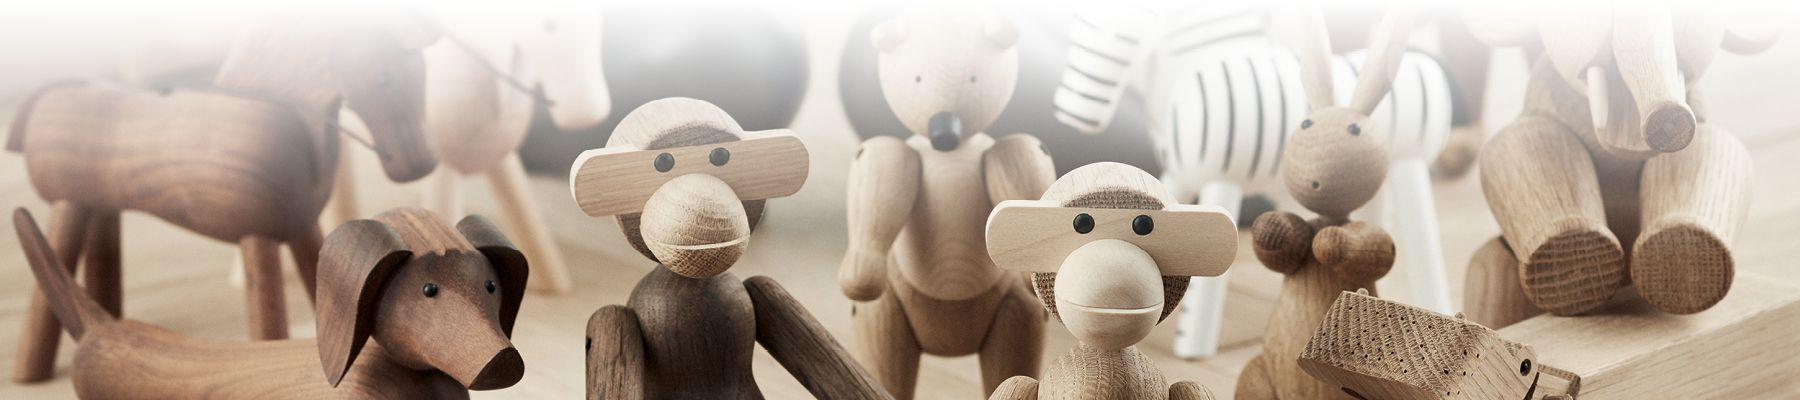 Kay Bojesen Wood Monkeys & Figures